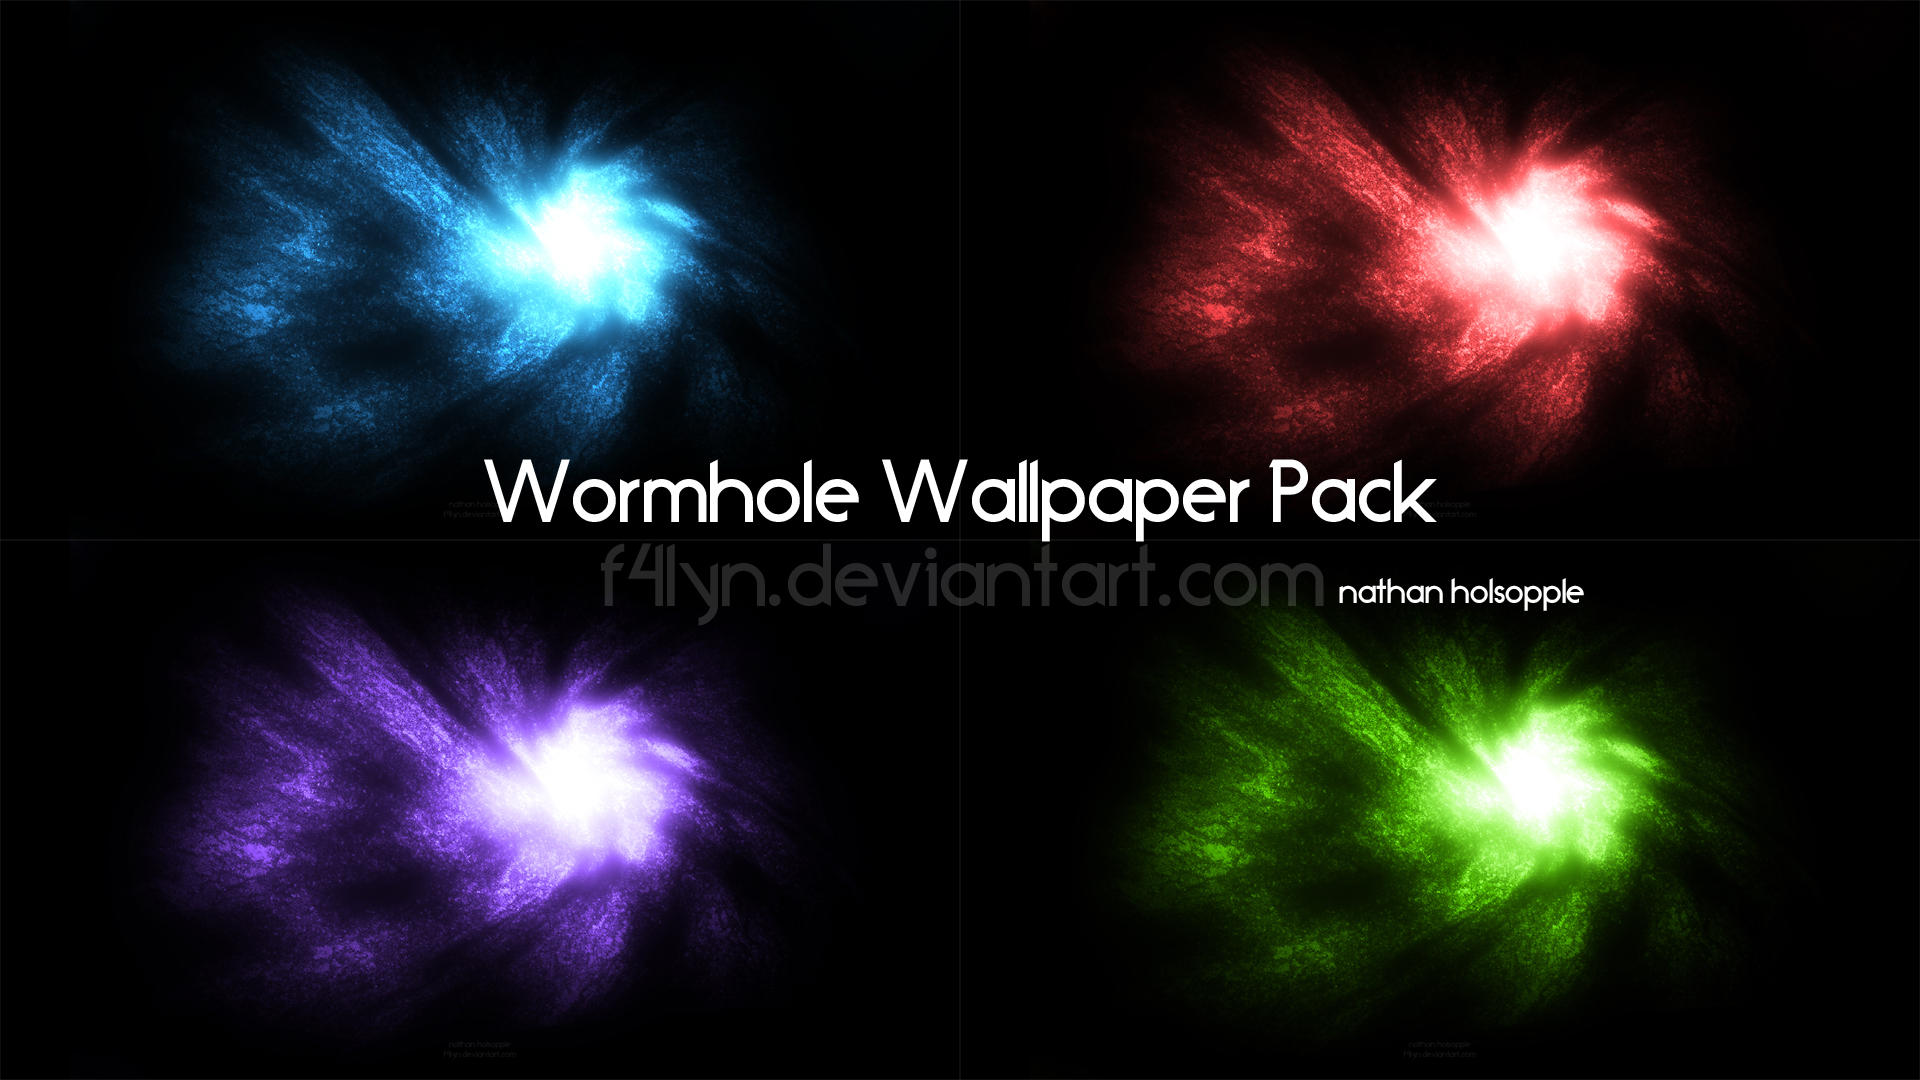 wormhole wallpaper pack by f4lyn d410kh9 Wallpaper pack 9